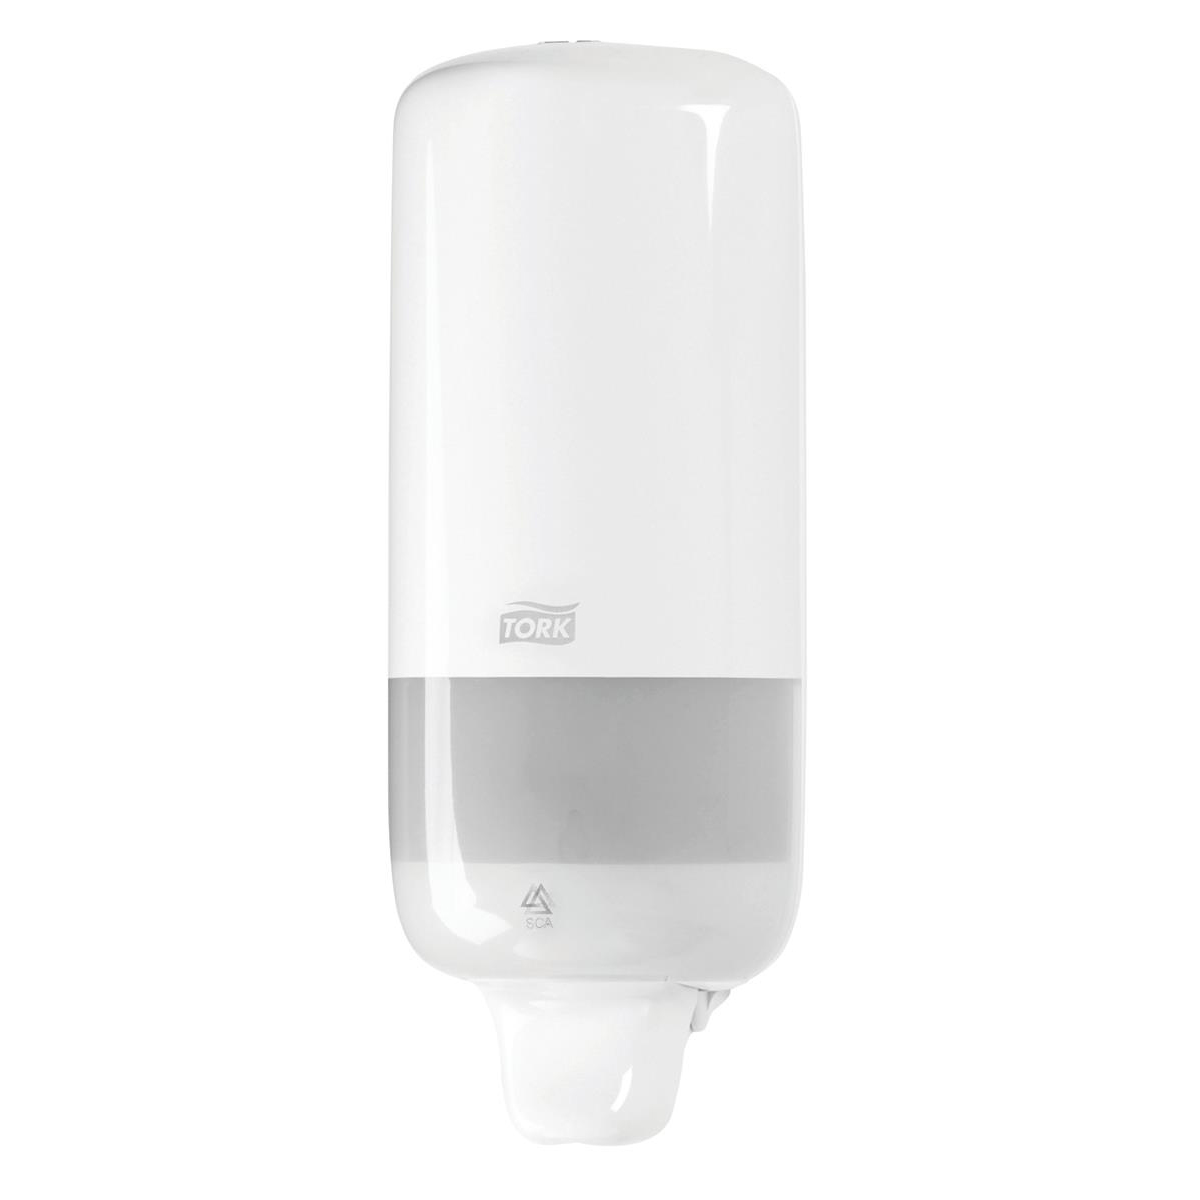 Soaps Tork Liquid Soap Dispenser for 1000ml Refills Casing White Ref 560000